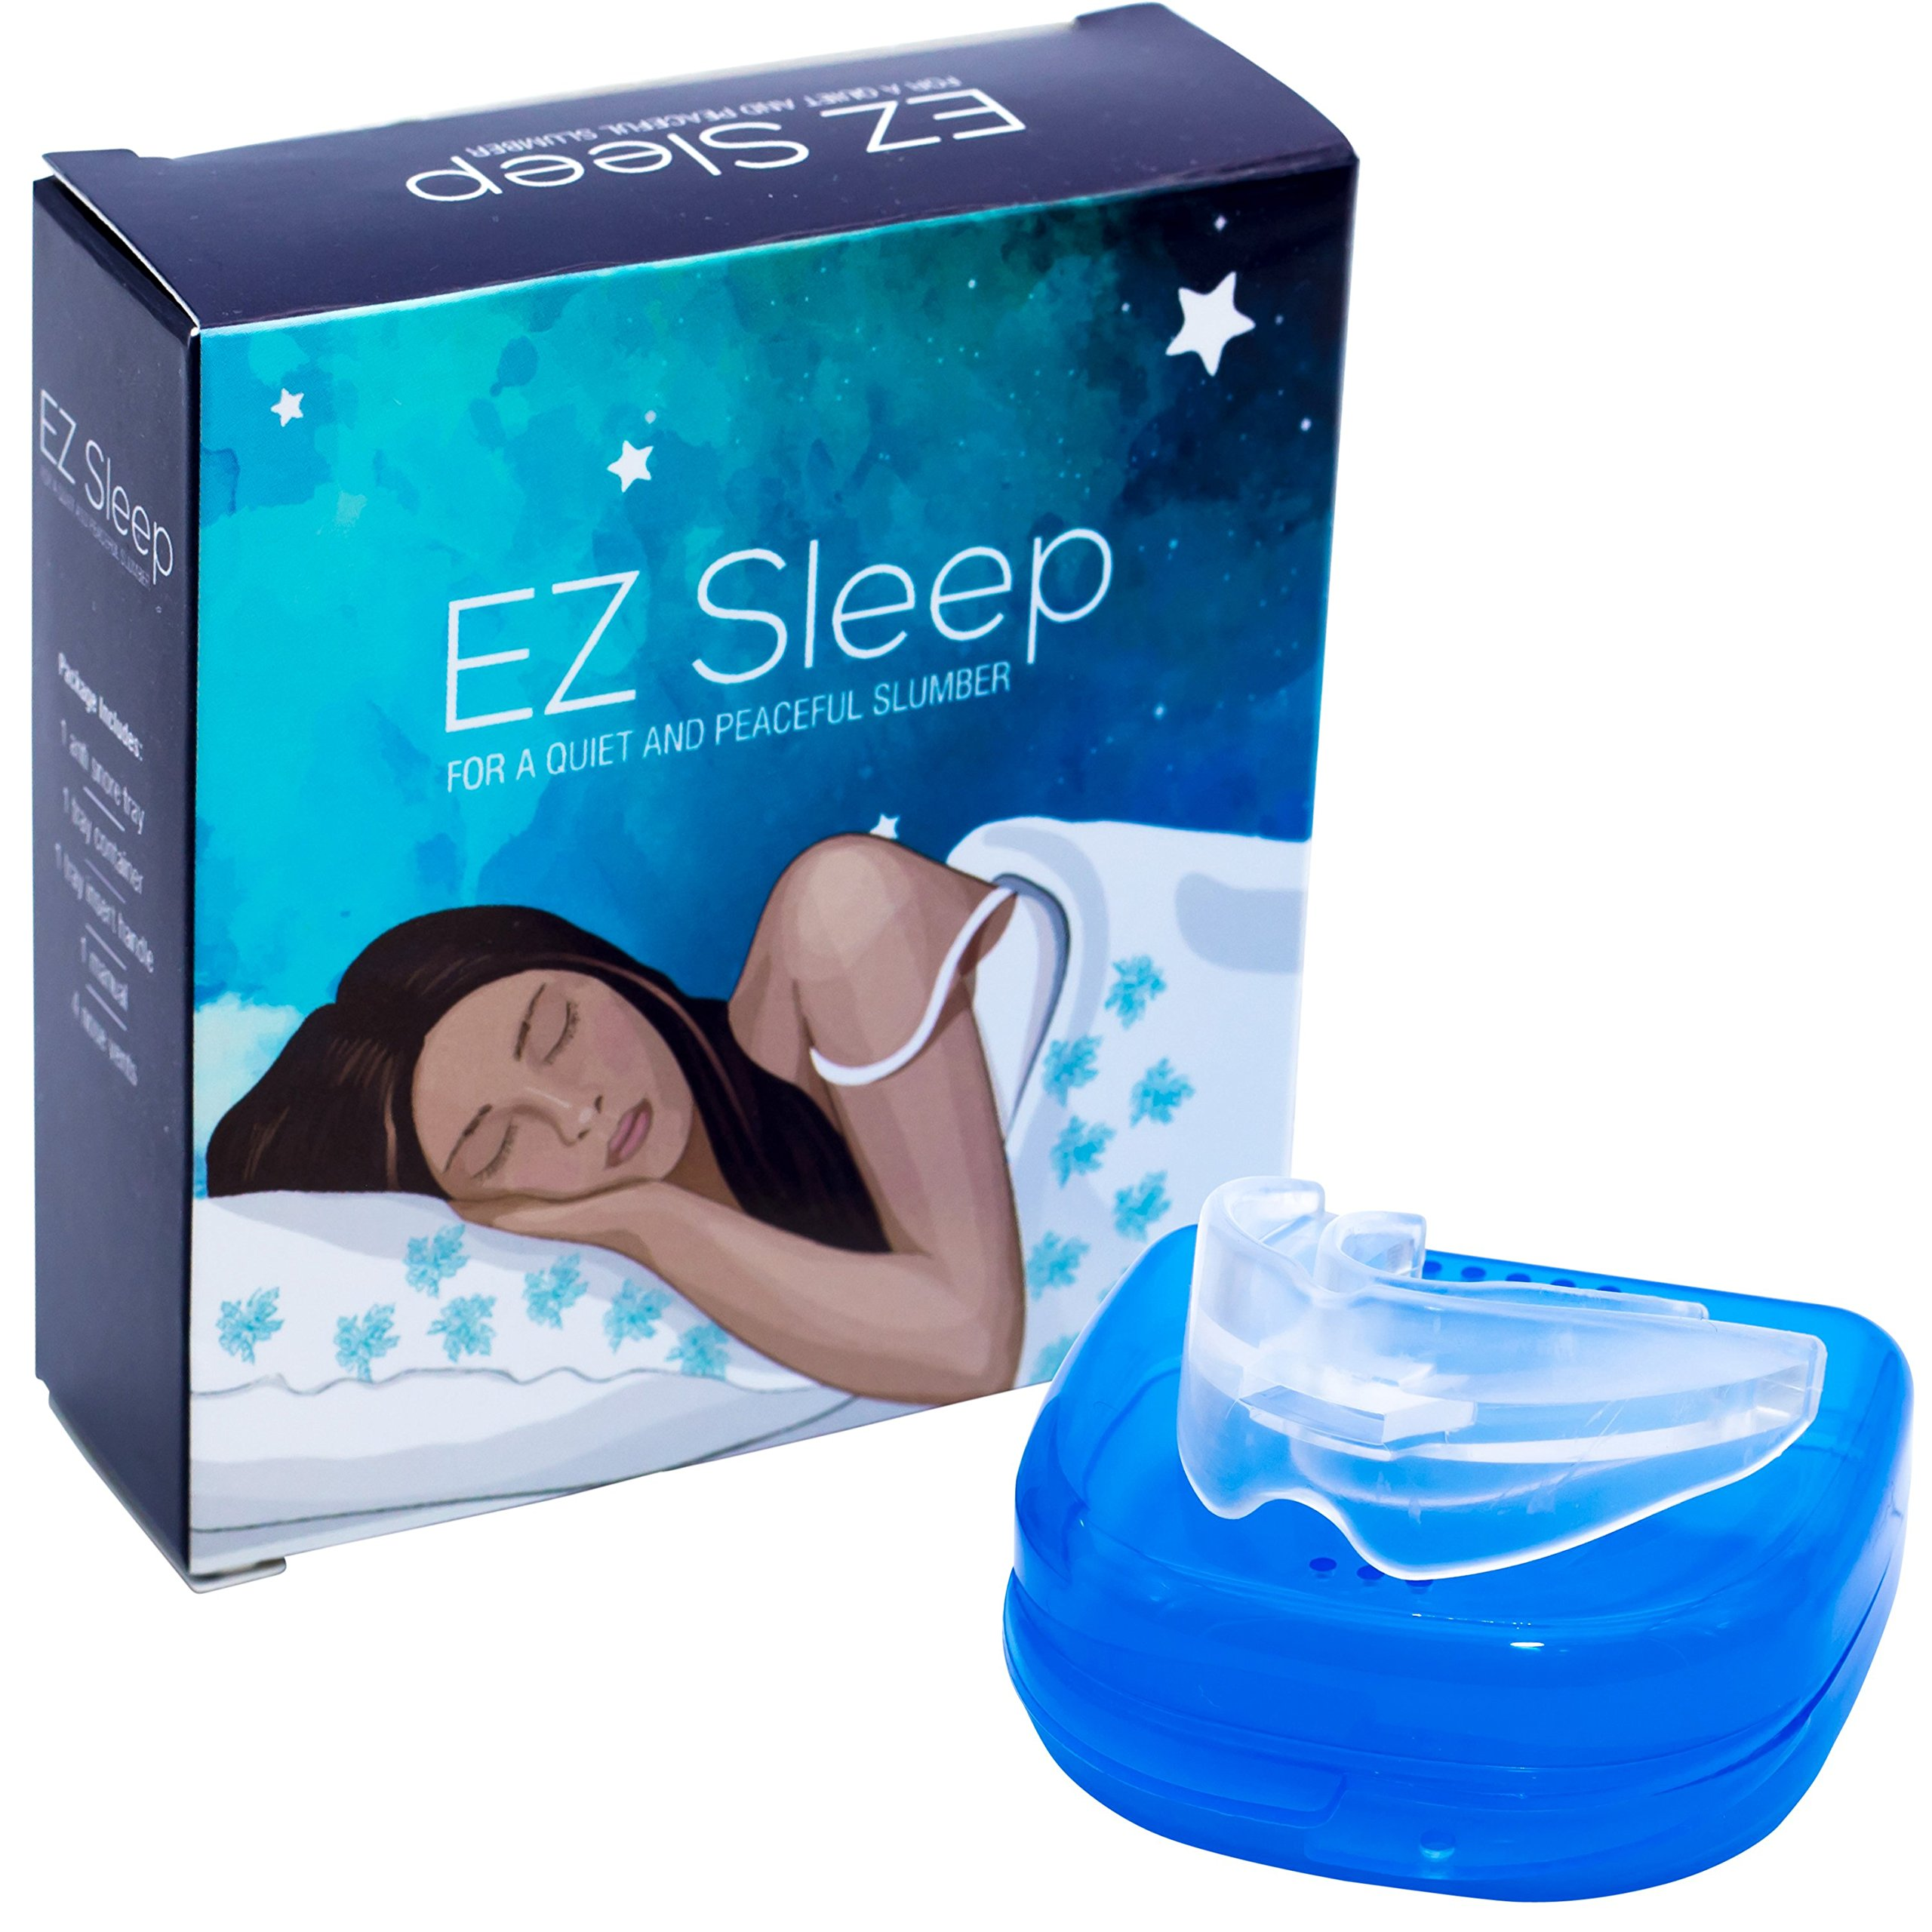 EZ Sleep Snore Stopper Mouthpiece w/ 4 Set Snore Stopper Nose Vents Helps Prevent Snoring and Teeth Grinding